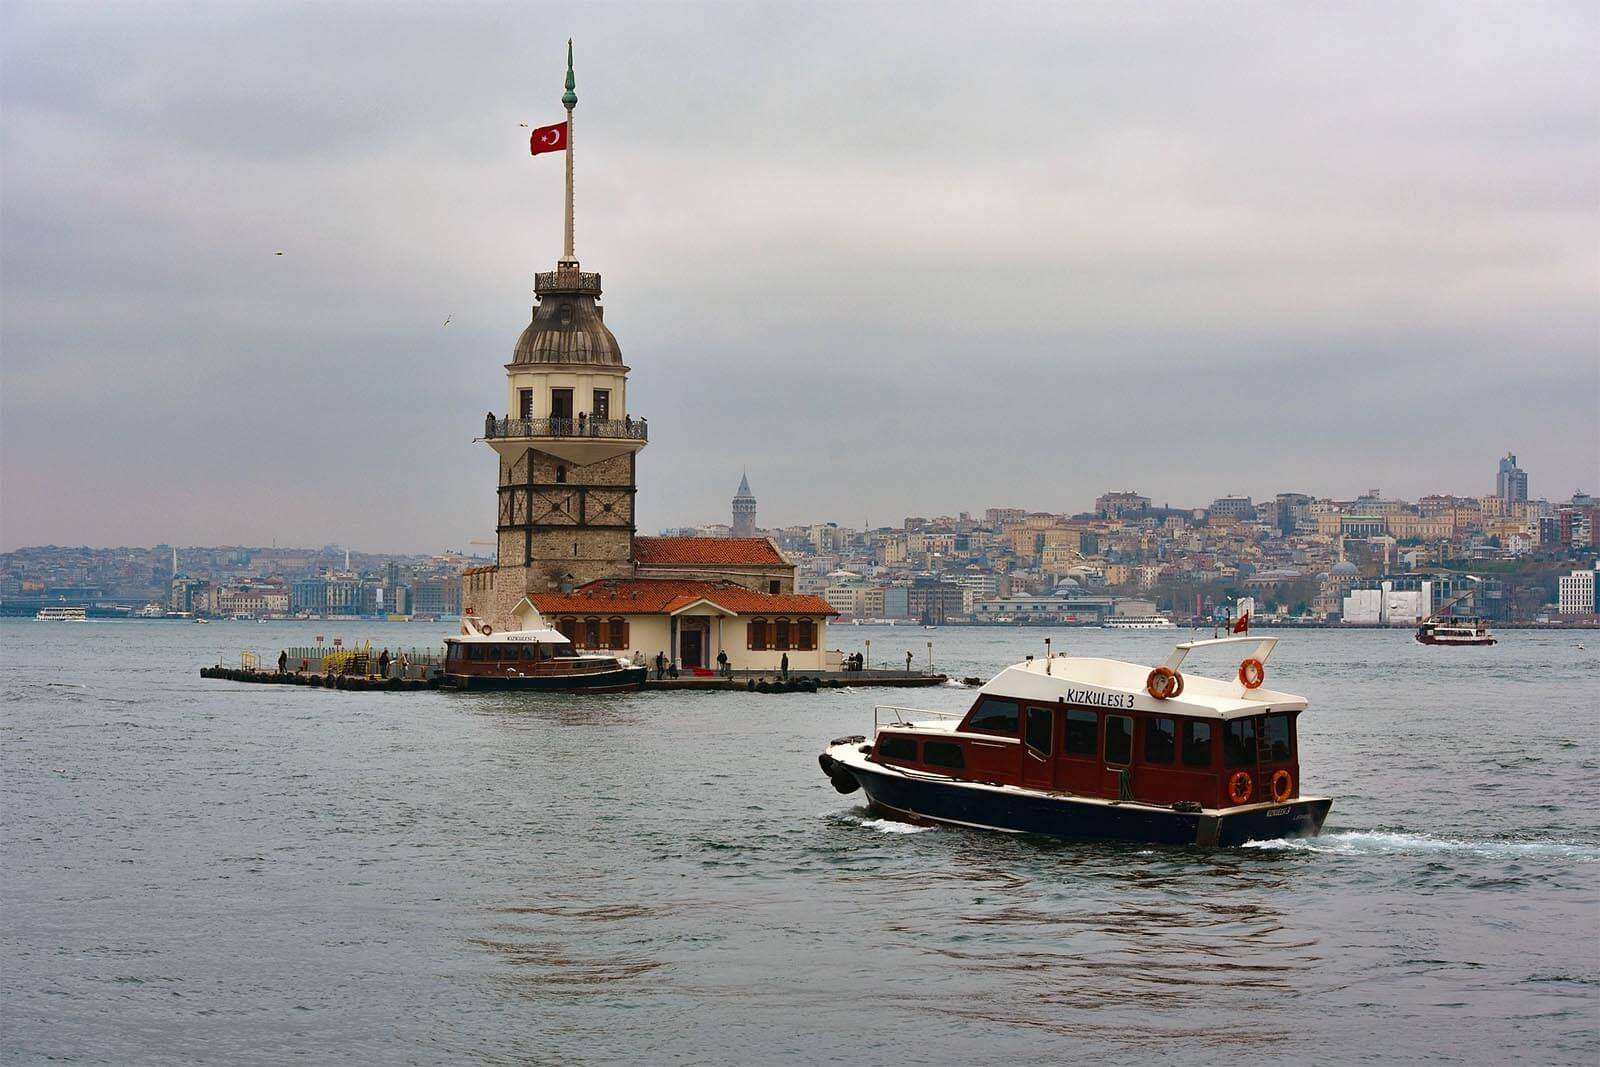 Will Turkey's problems impact our markets?